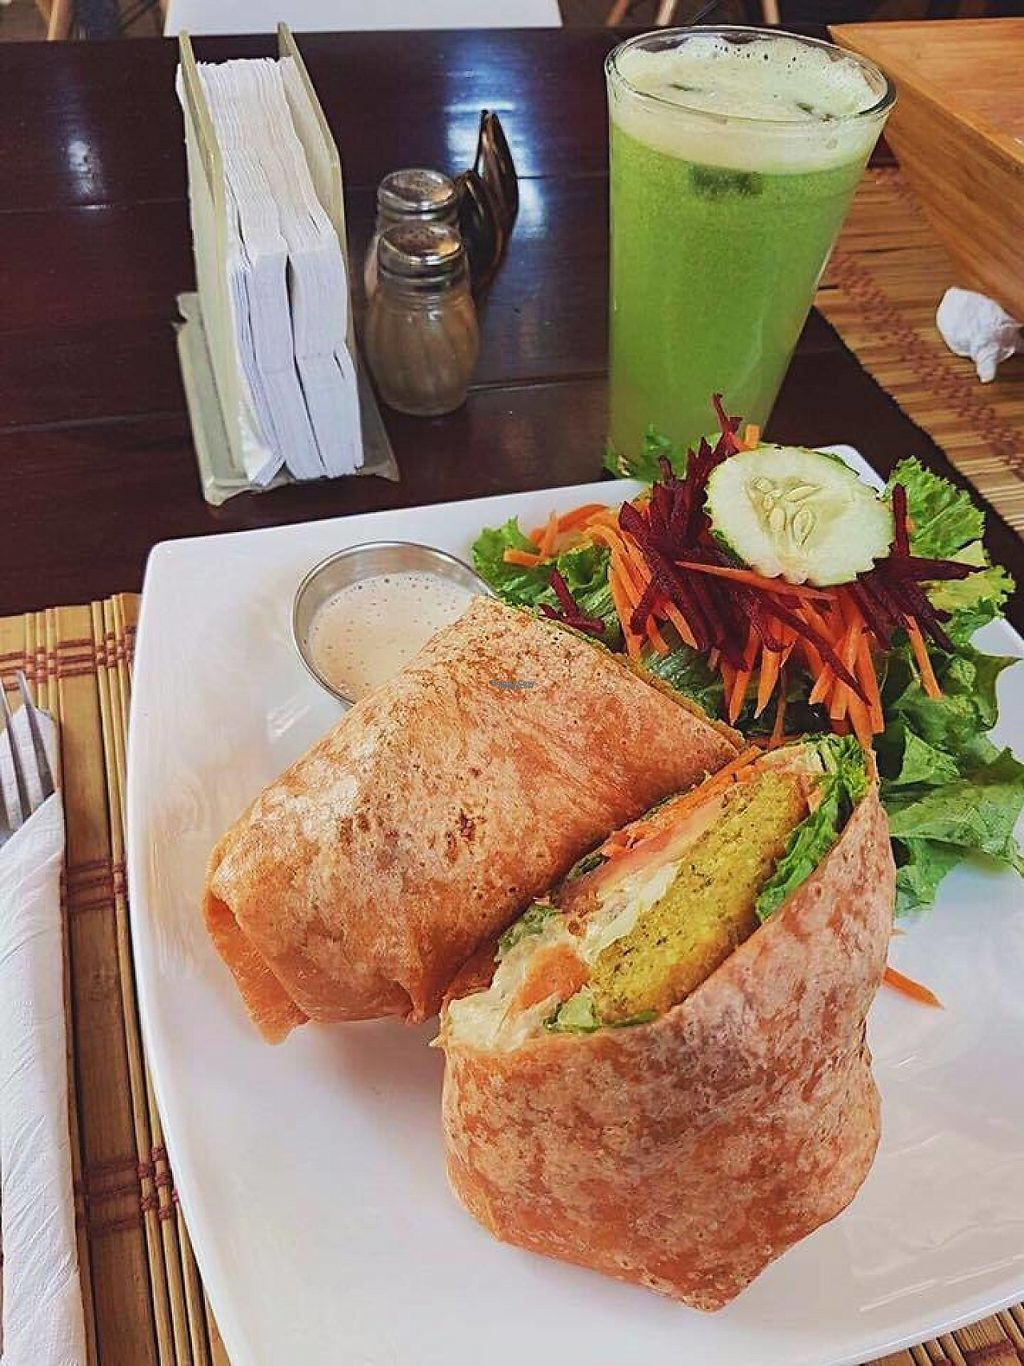 """Photo of Mantras Veggie Cafe and Tea House  by <a href=""""/members/profile/Matilda"""">Matilda</a> <br/>Vegan falafel and hummus wrap with sesame dressing <br/> February 7, 2017  - <a href='/contact/abuse/image/18650/223955'>Report</a>"""